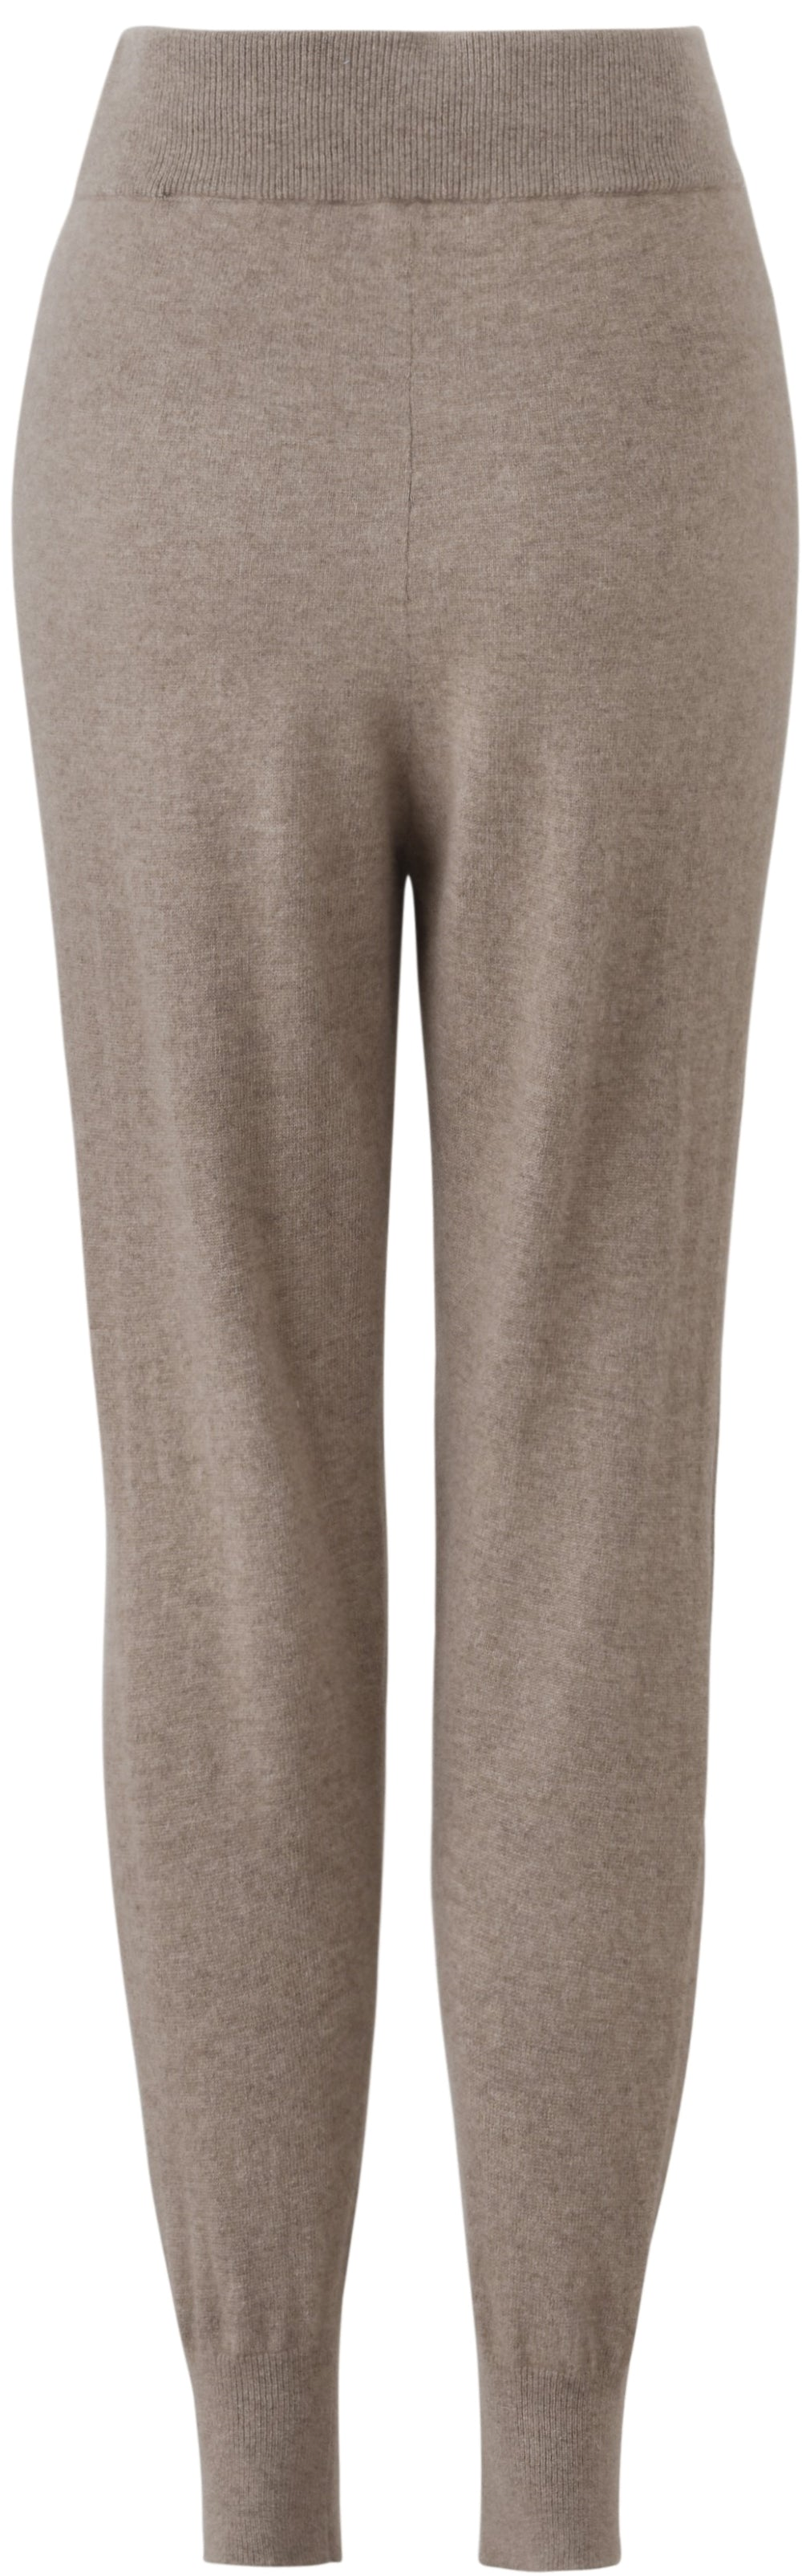 Inari Women's brown cashmere pants - back side - 100% high-quality cashmere - Inari-clothing.fi